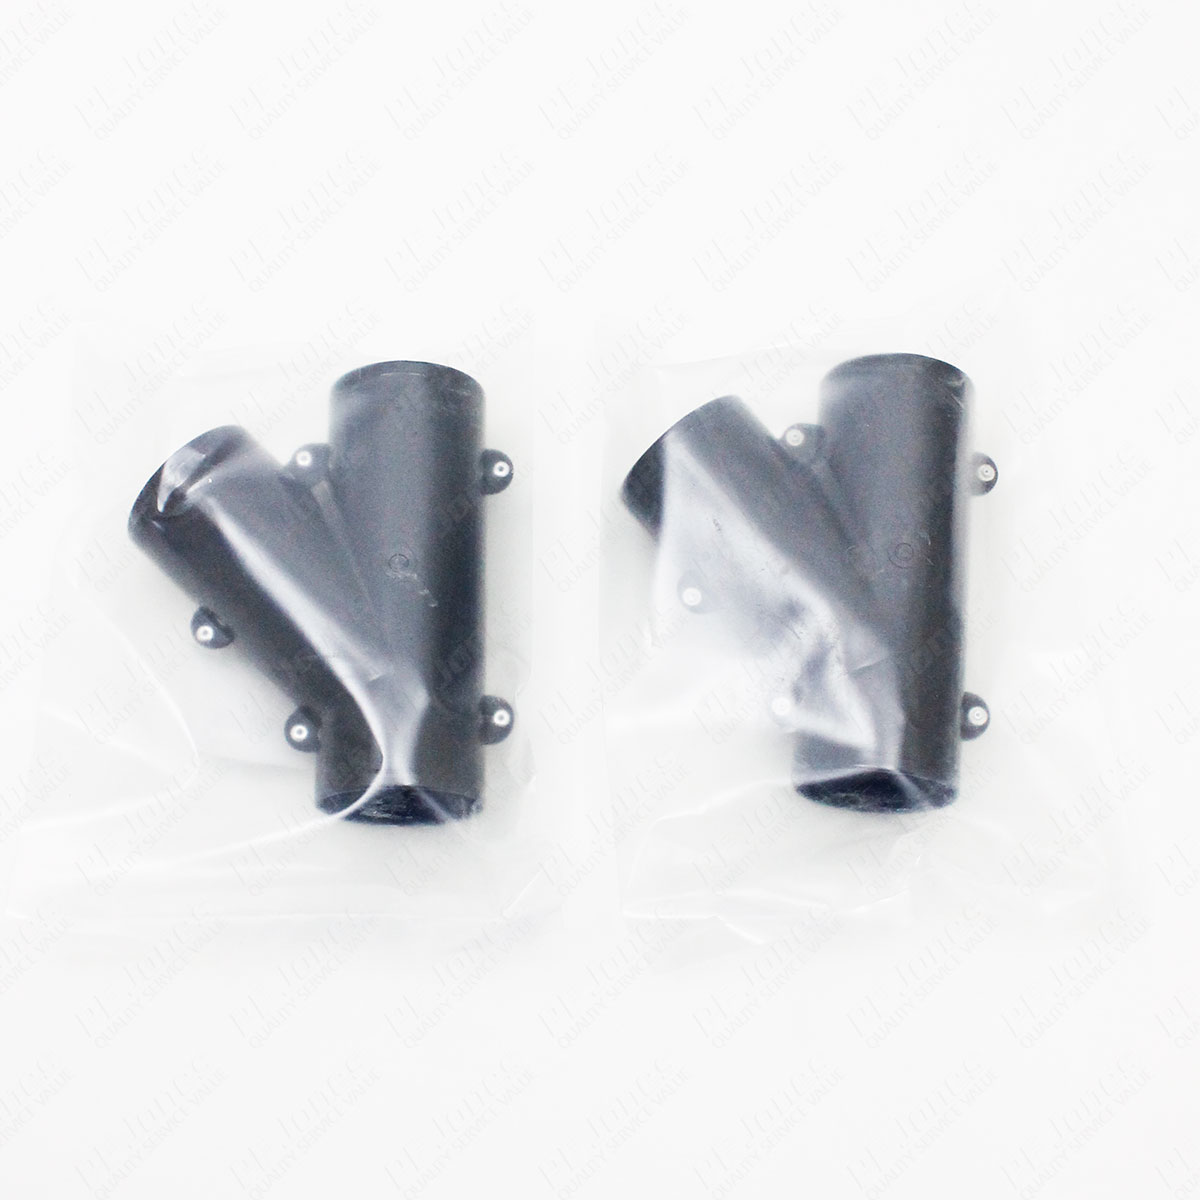 Y-shape adapter for air pipe x 2